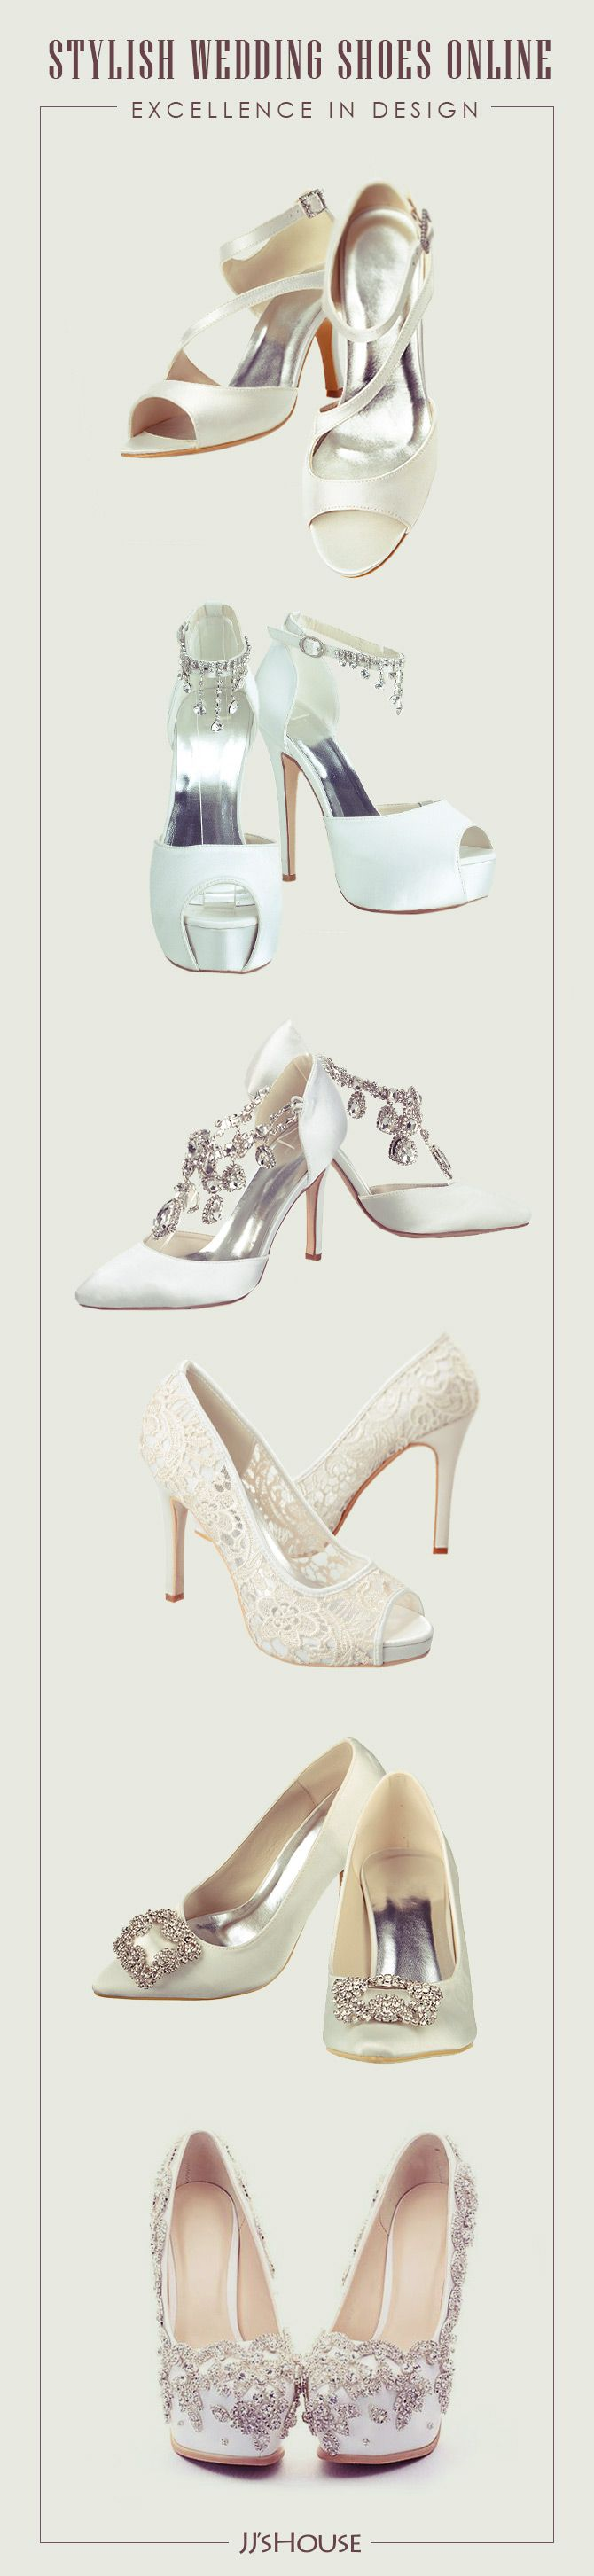 Stylish Wedding Shoes Online   Excellence in Design! #weddingshoes